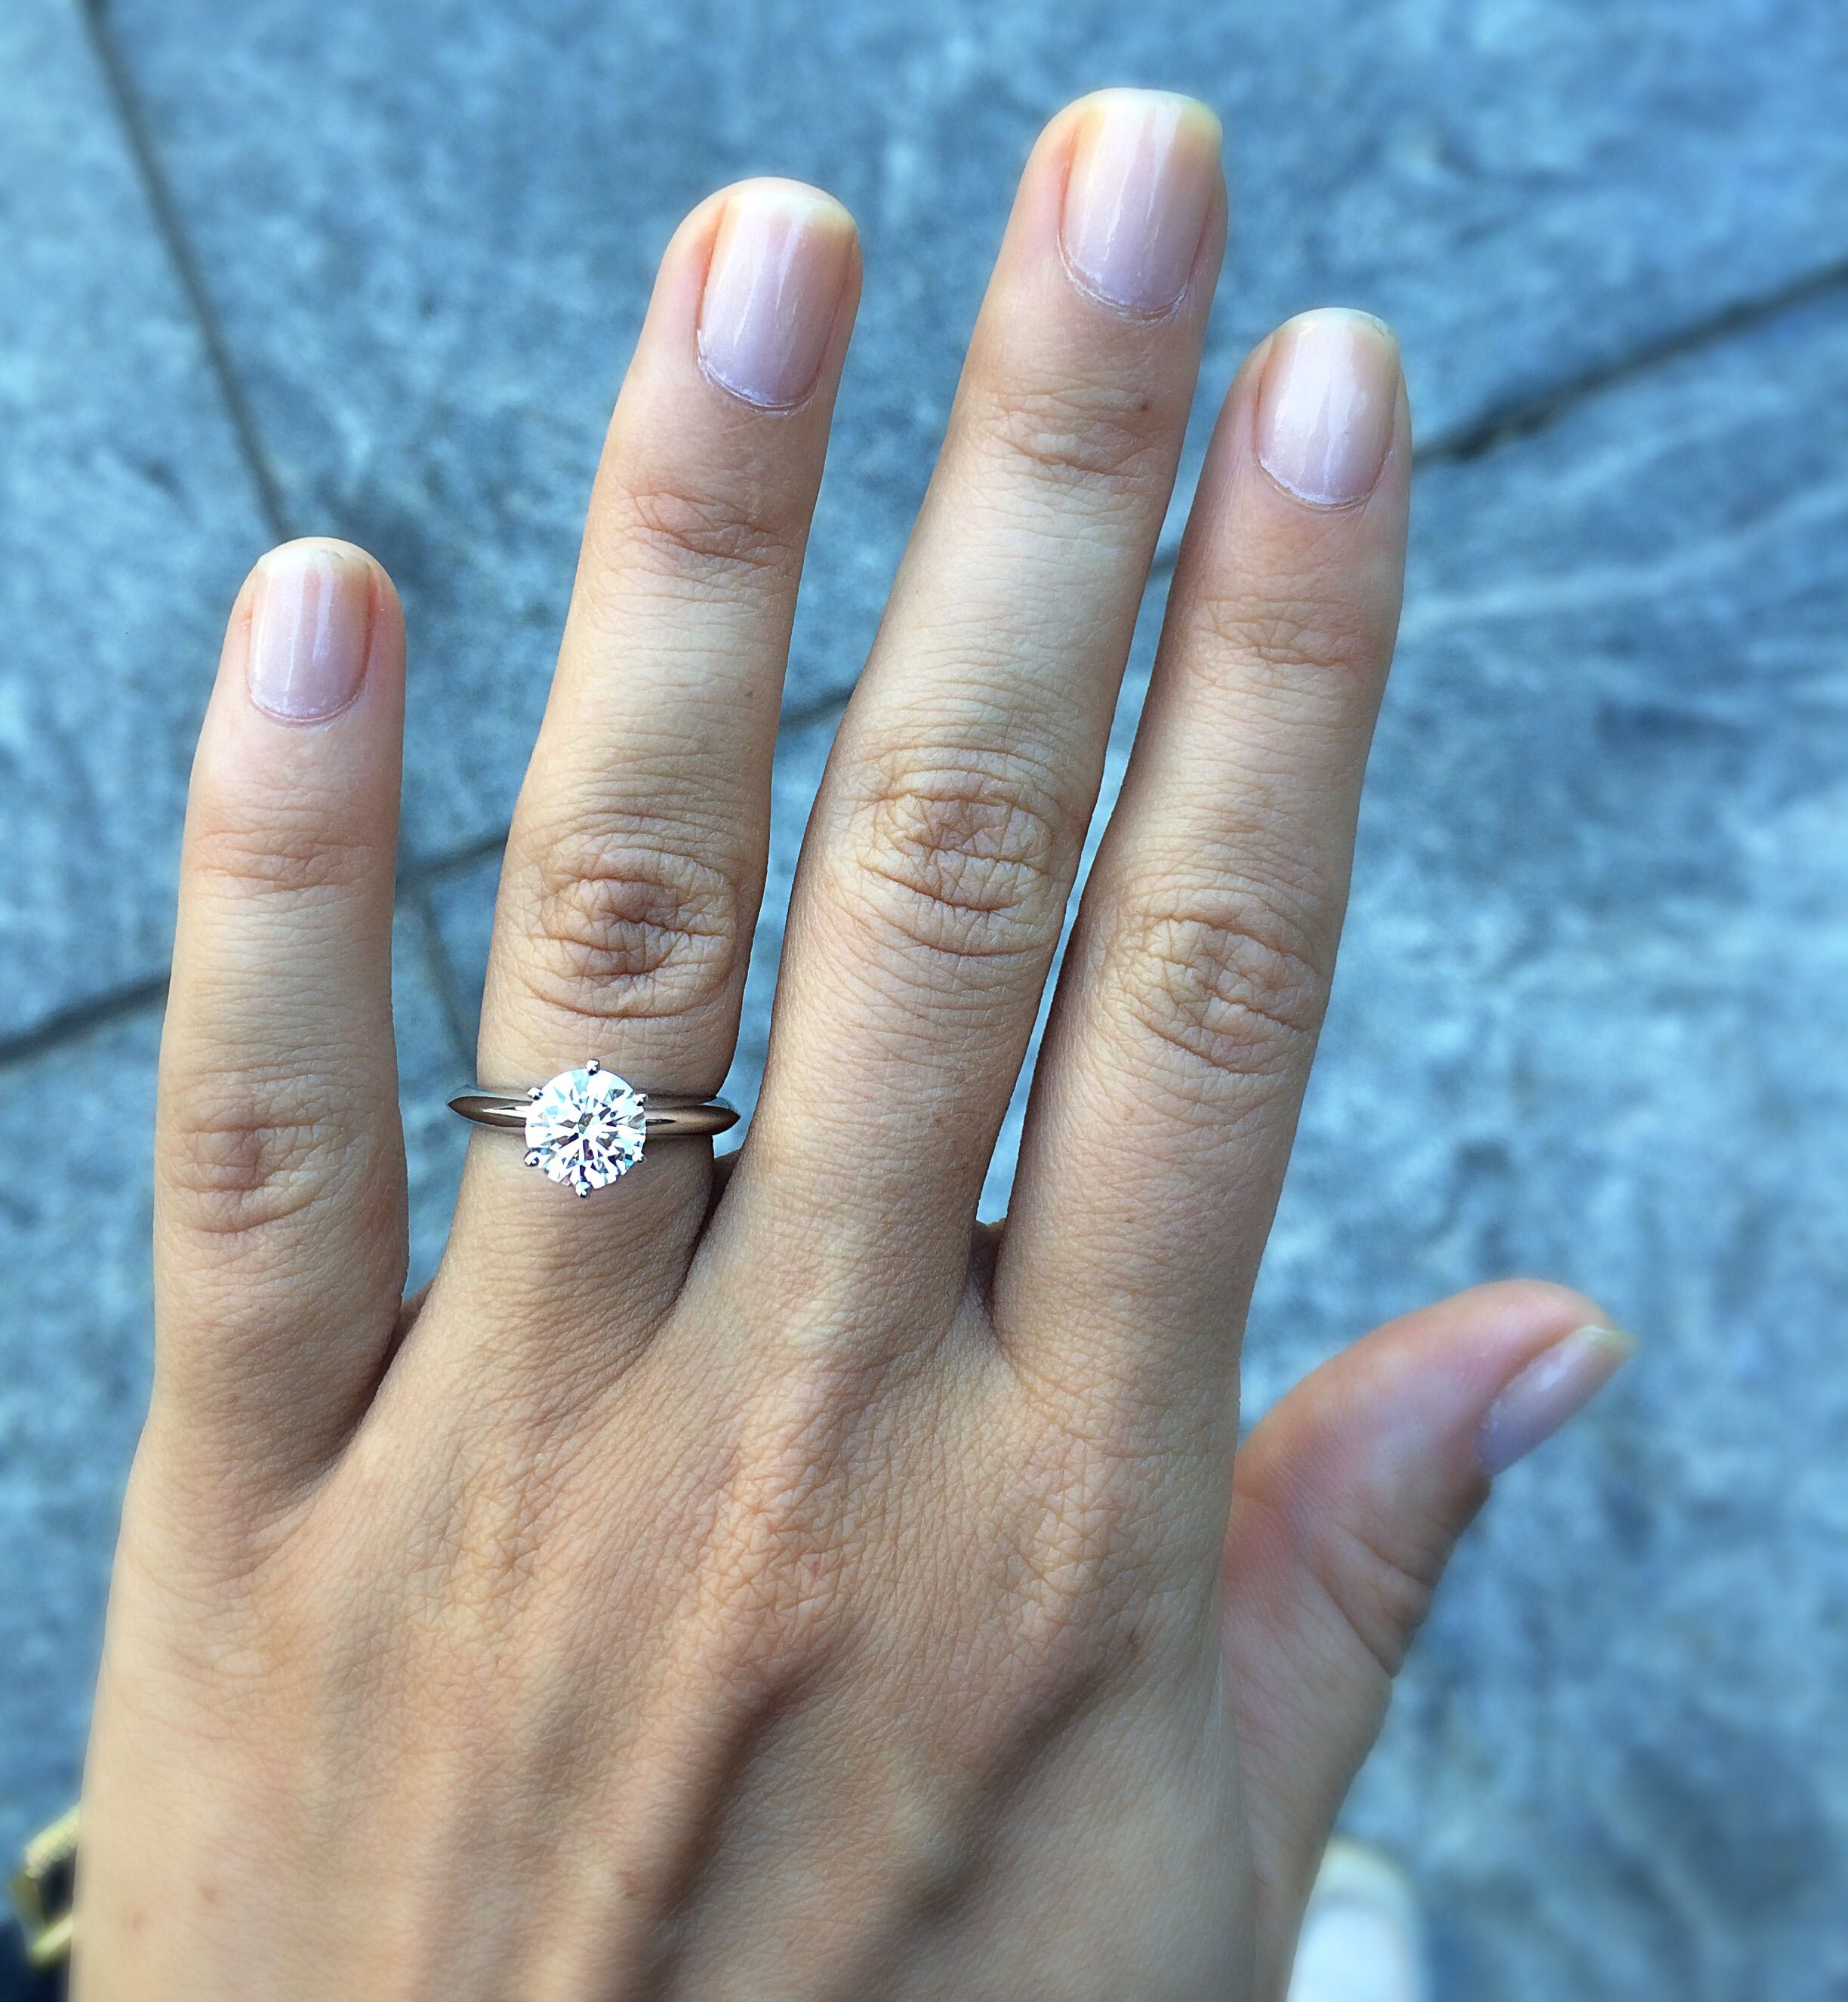 Let Me See Tiffany Rings Weddingbee Engagement Rings Opal Tiffany Rings Engagement Ring On Hand